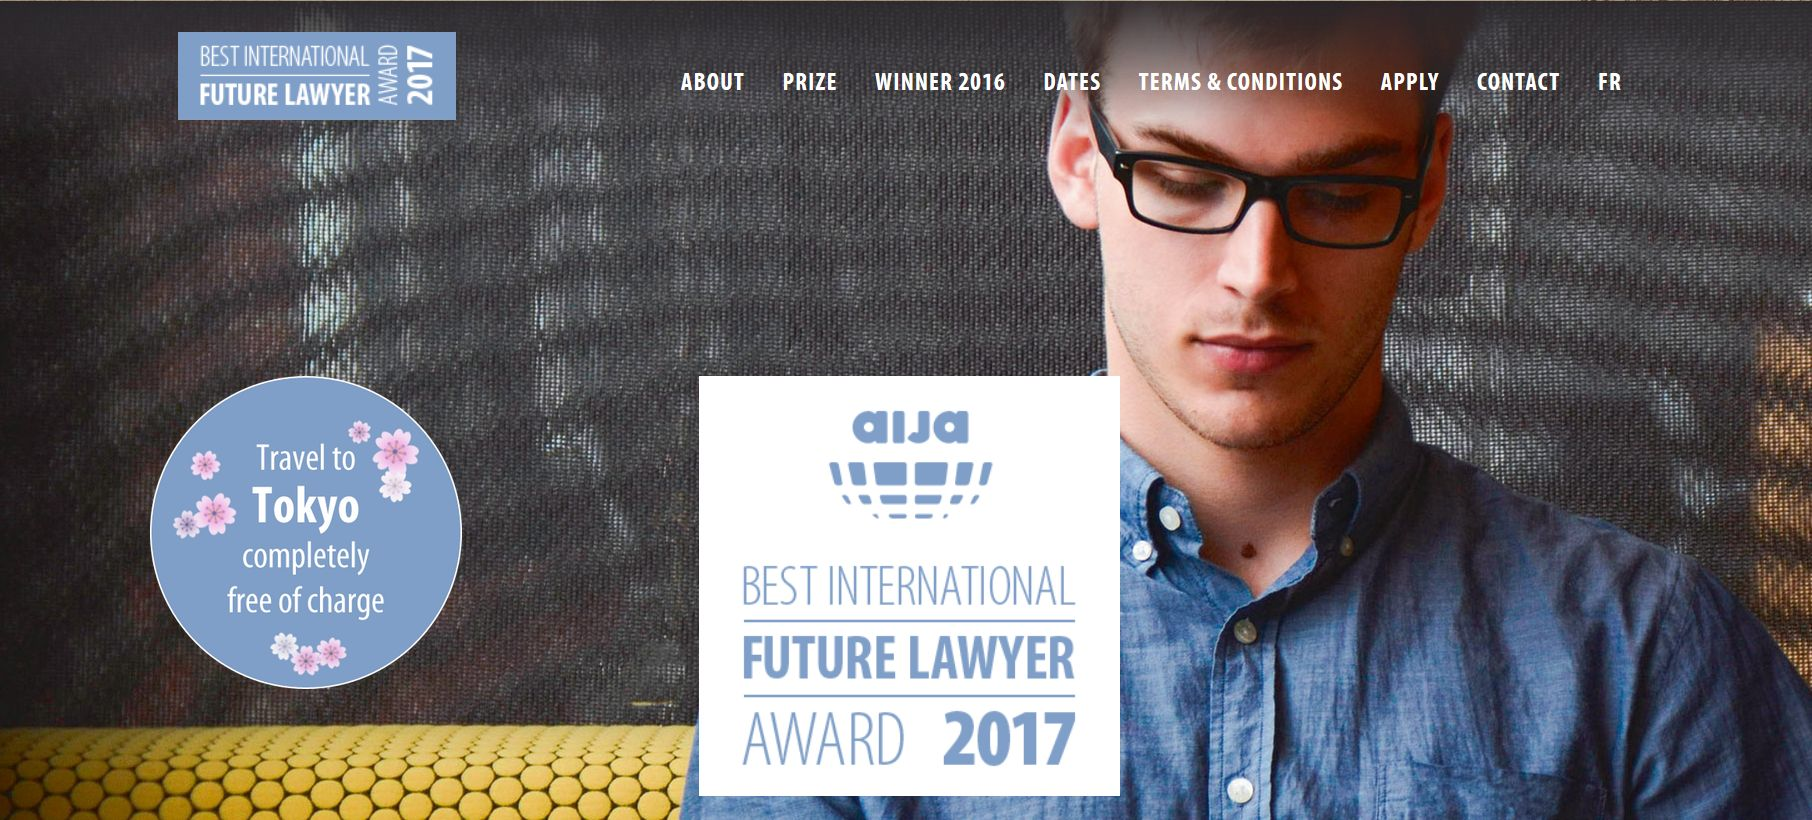 AIJA Best International Future Lawyer Award